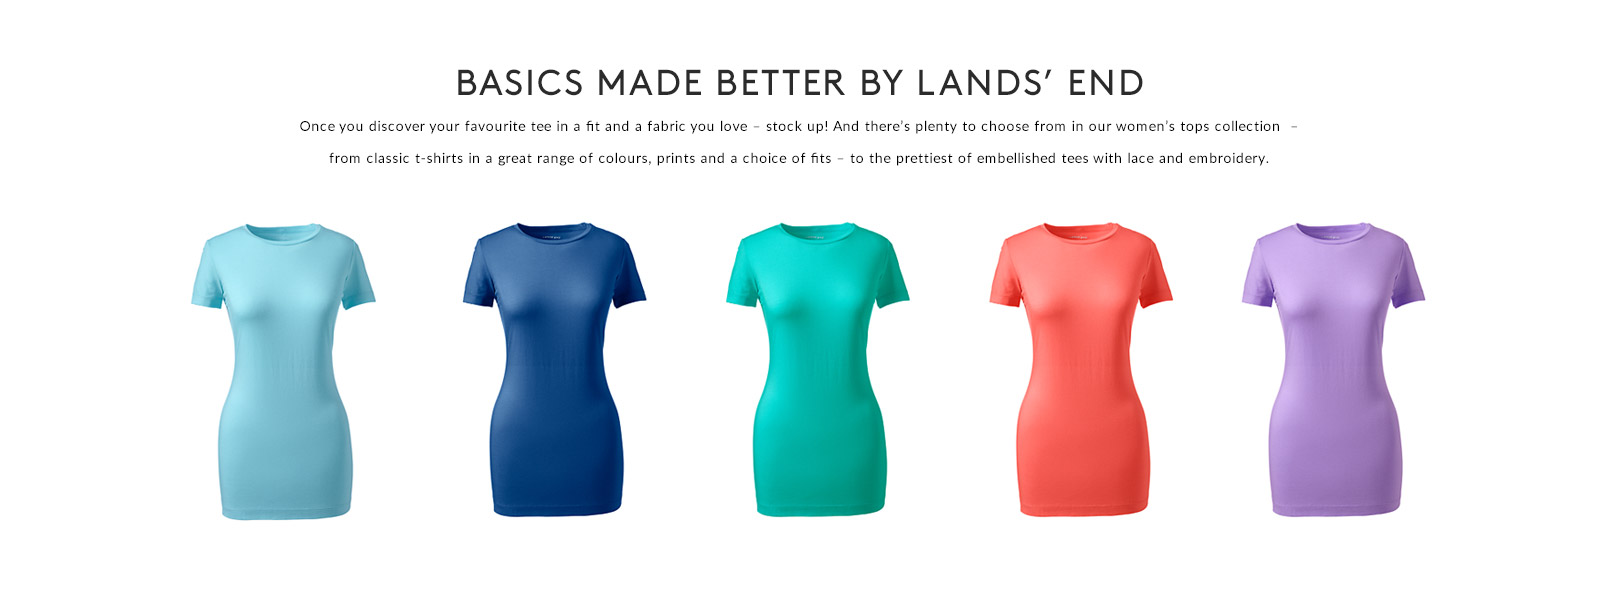 BASICS MADE BETTER BY LANDS' END